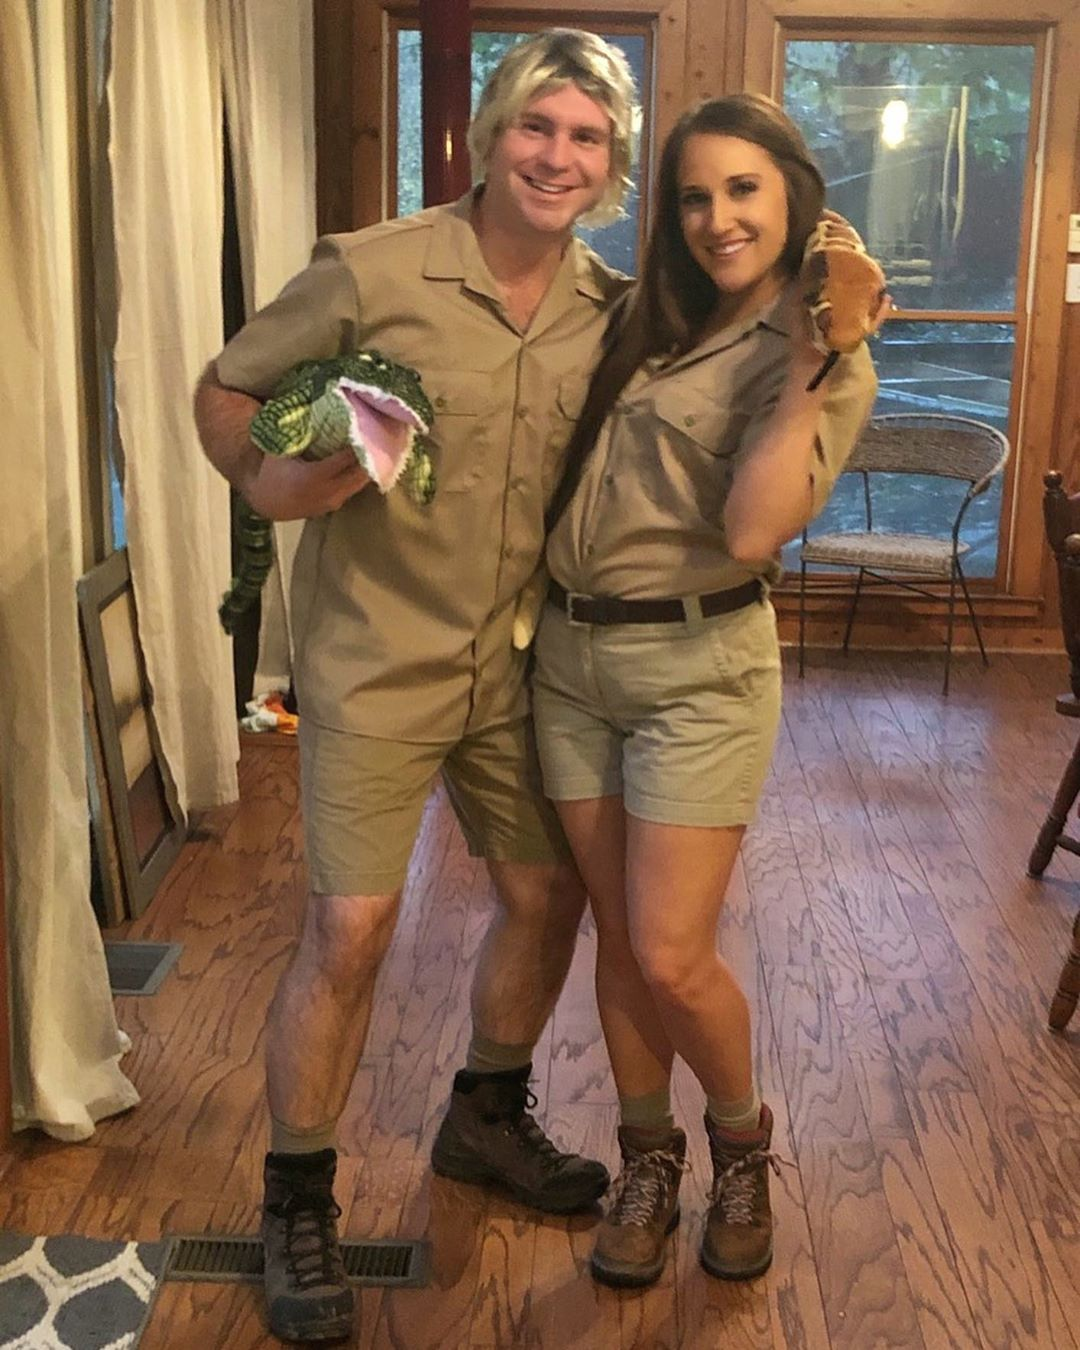 Pin by molly partyka on Halloween costumes in 2020 Steve